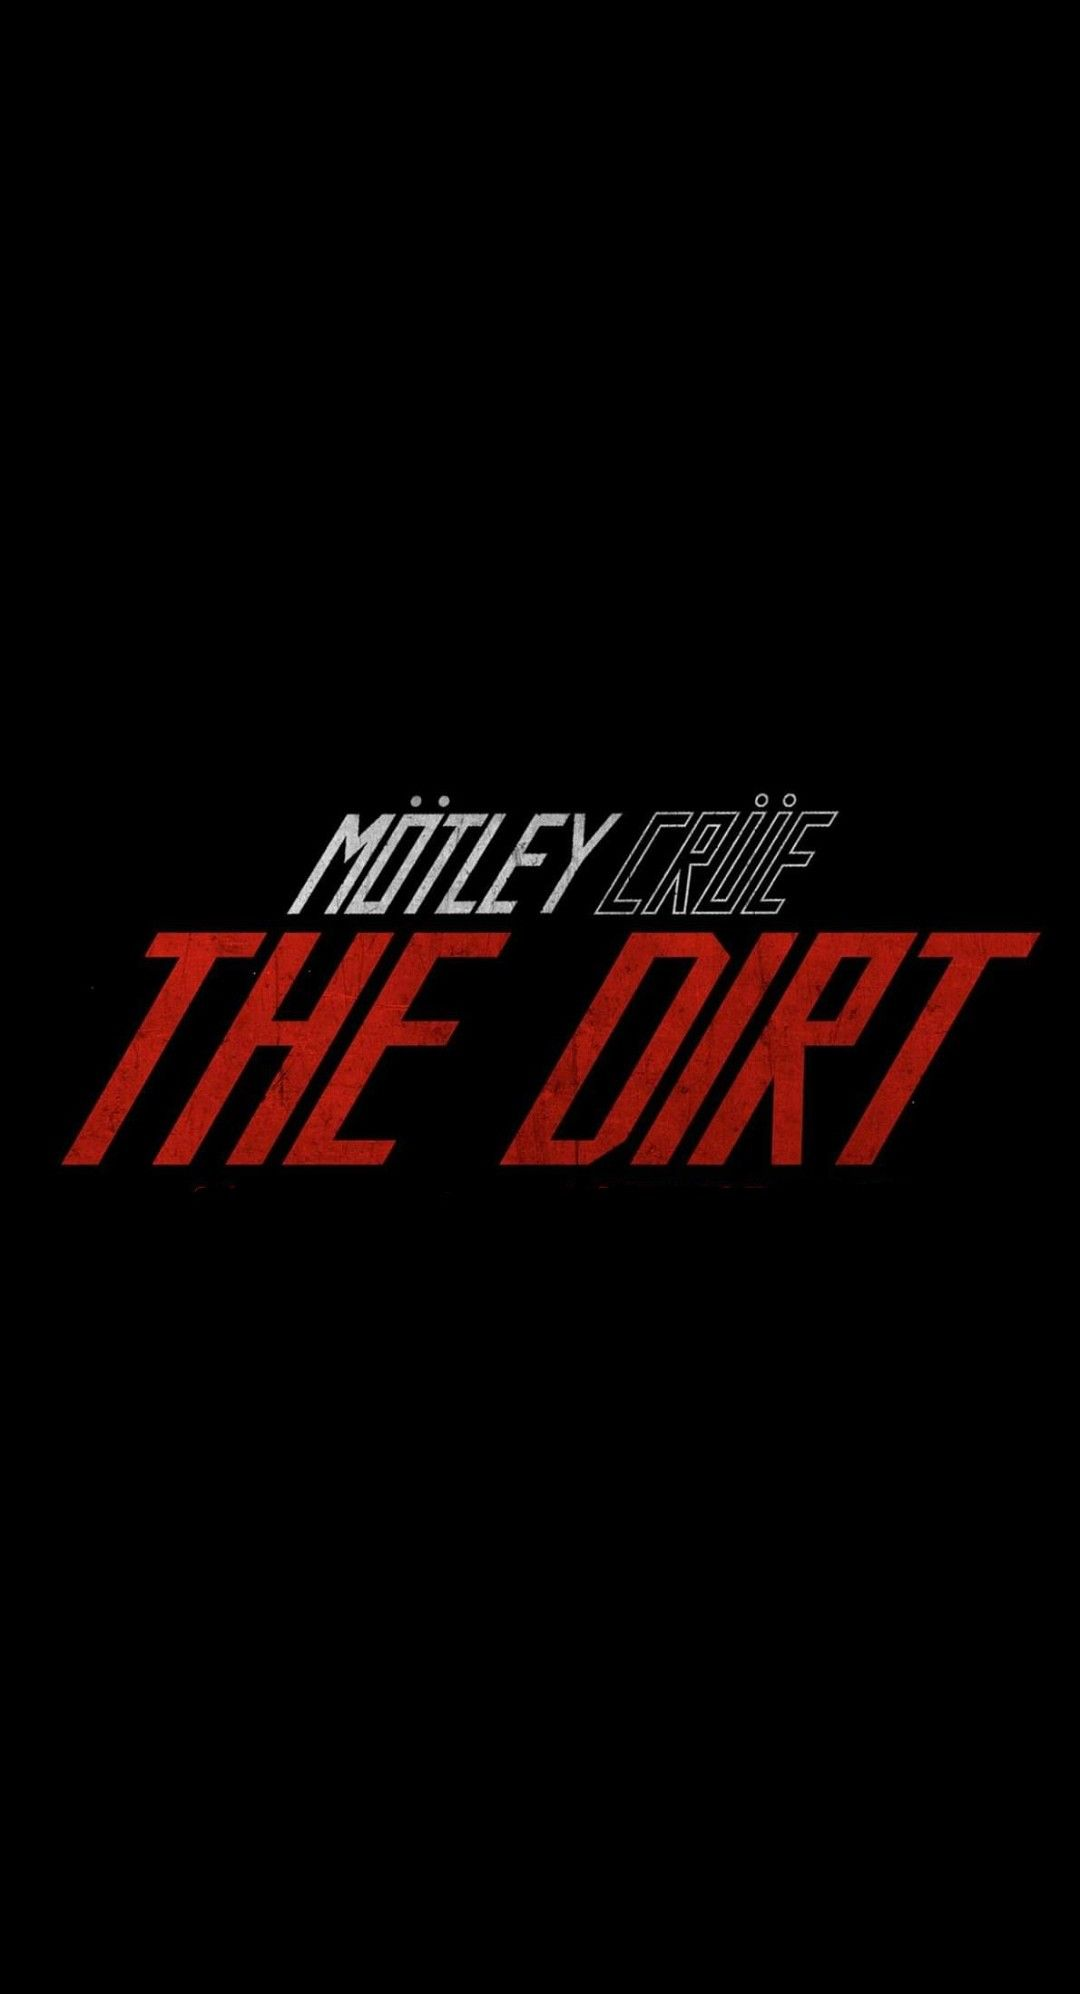 Motley Crue The Dirt Wallpaper Iphone Phone Motley Crue Vintage